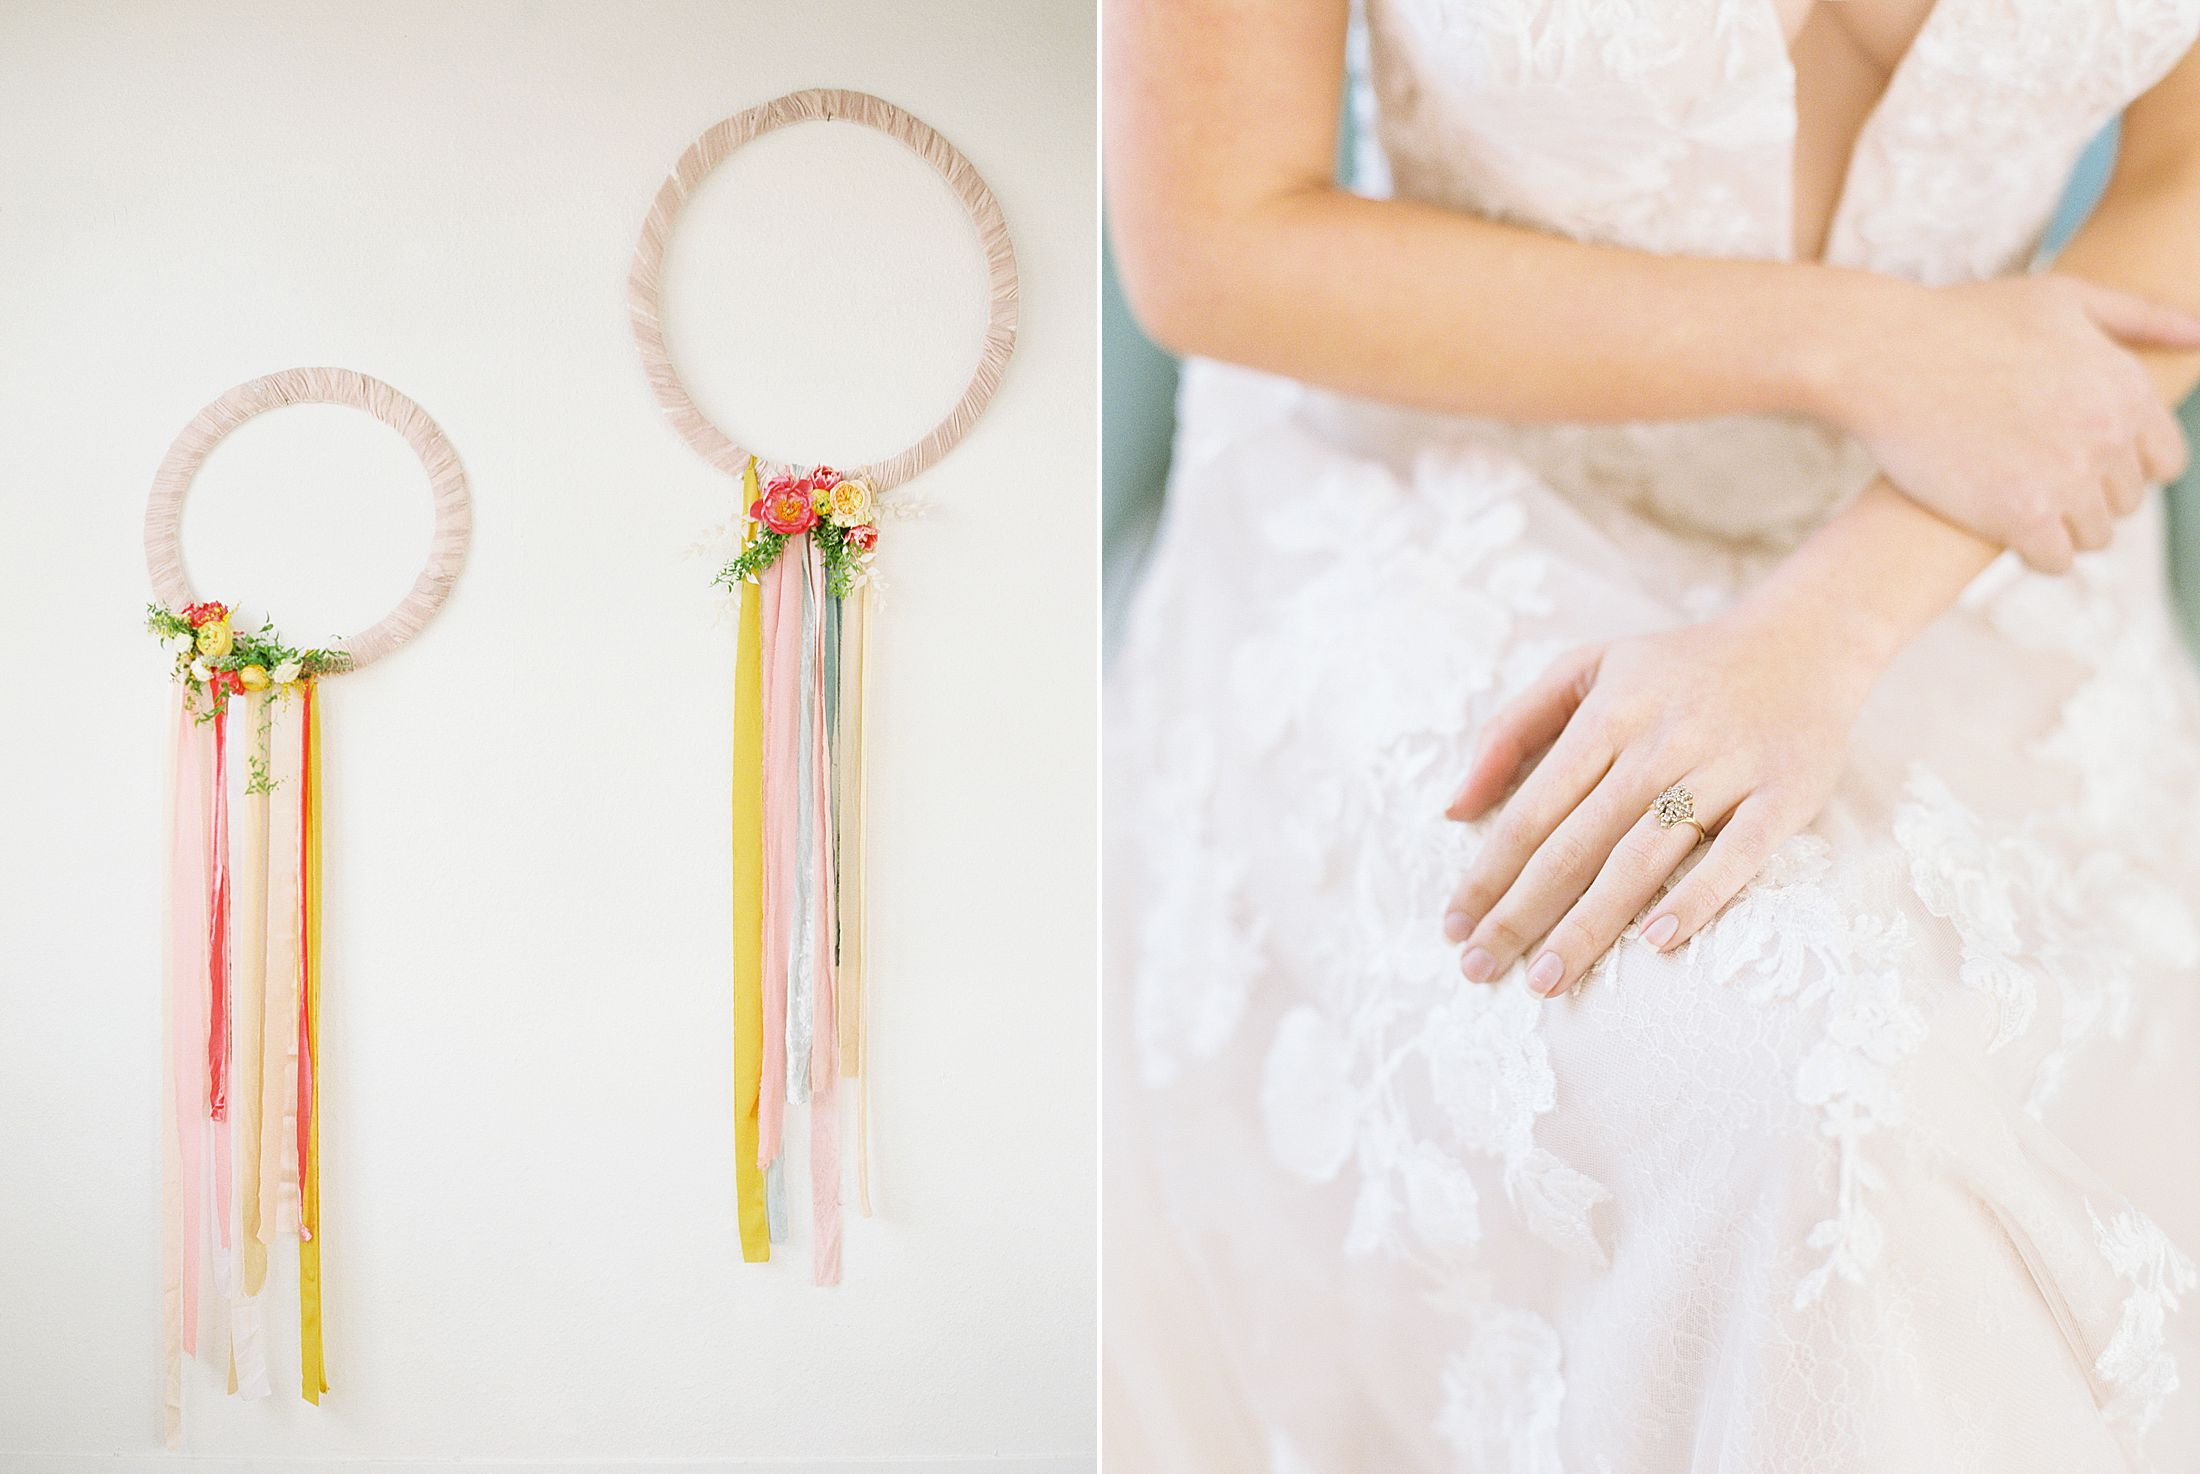 Bay Area Spring Wedding Inspiration - Ashley Baumgartner - Inspired By This - Party Crush Studio and Lens of Lenox Videography - Bay Area Wedding Photography_0031.jpg